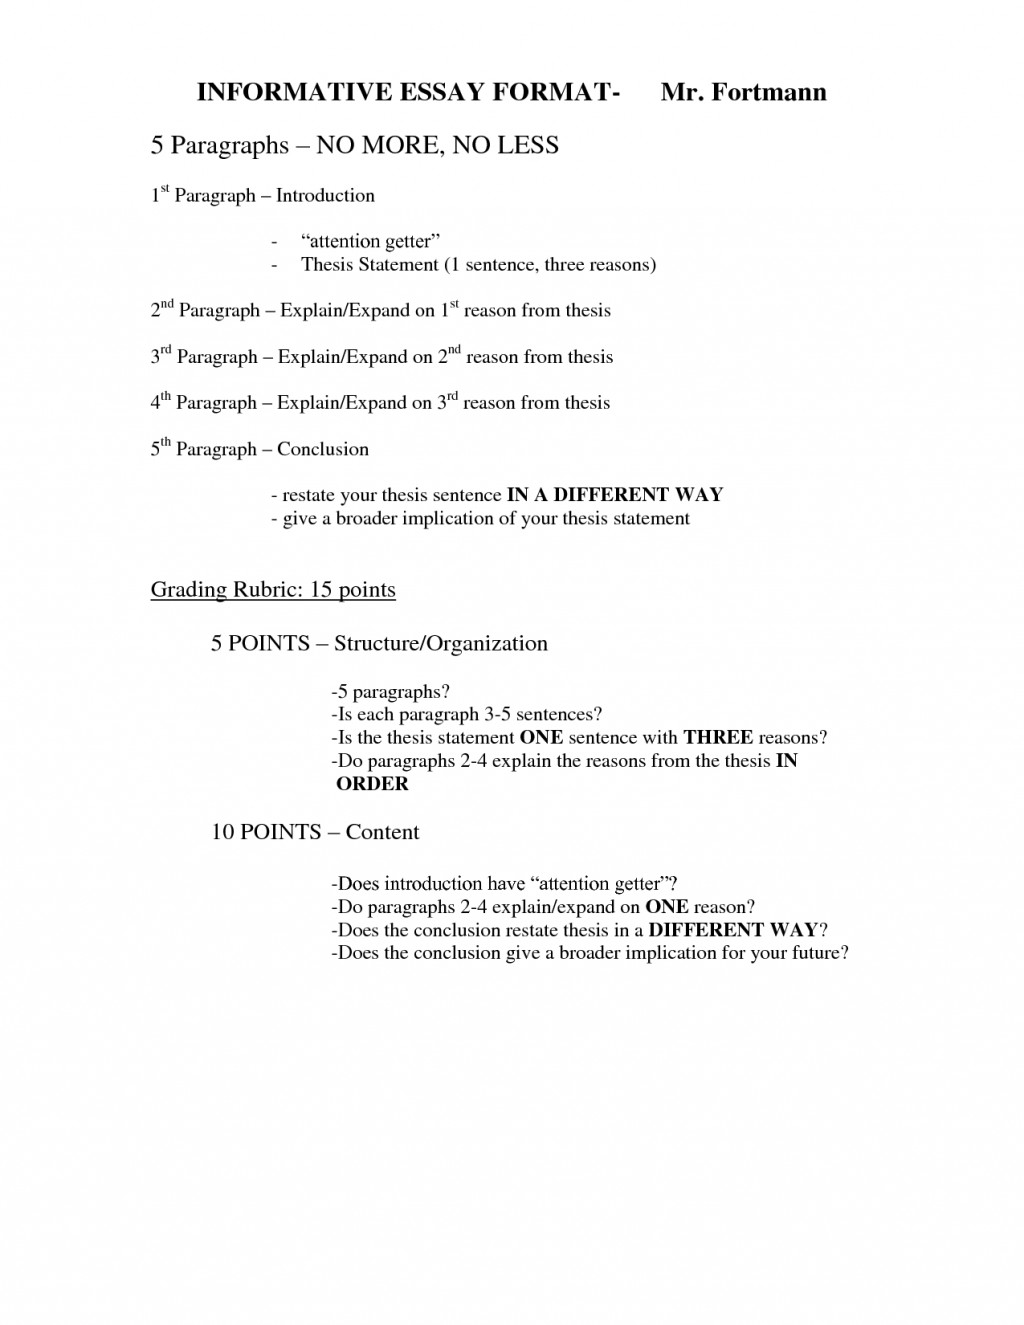 001 Informational Essay Format Top Interview Explanatory Guidelines Quote Large